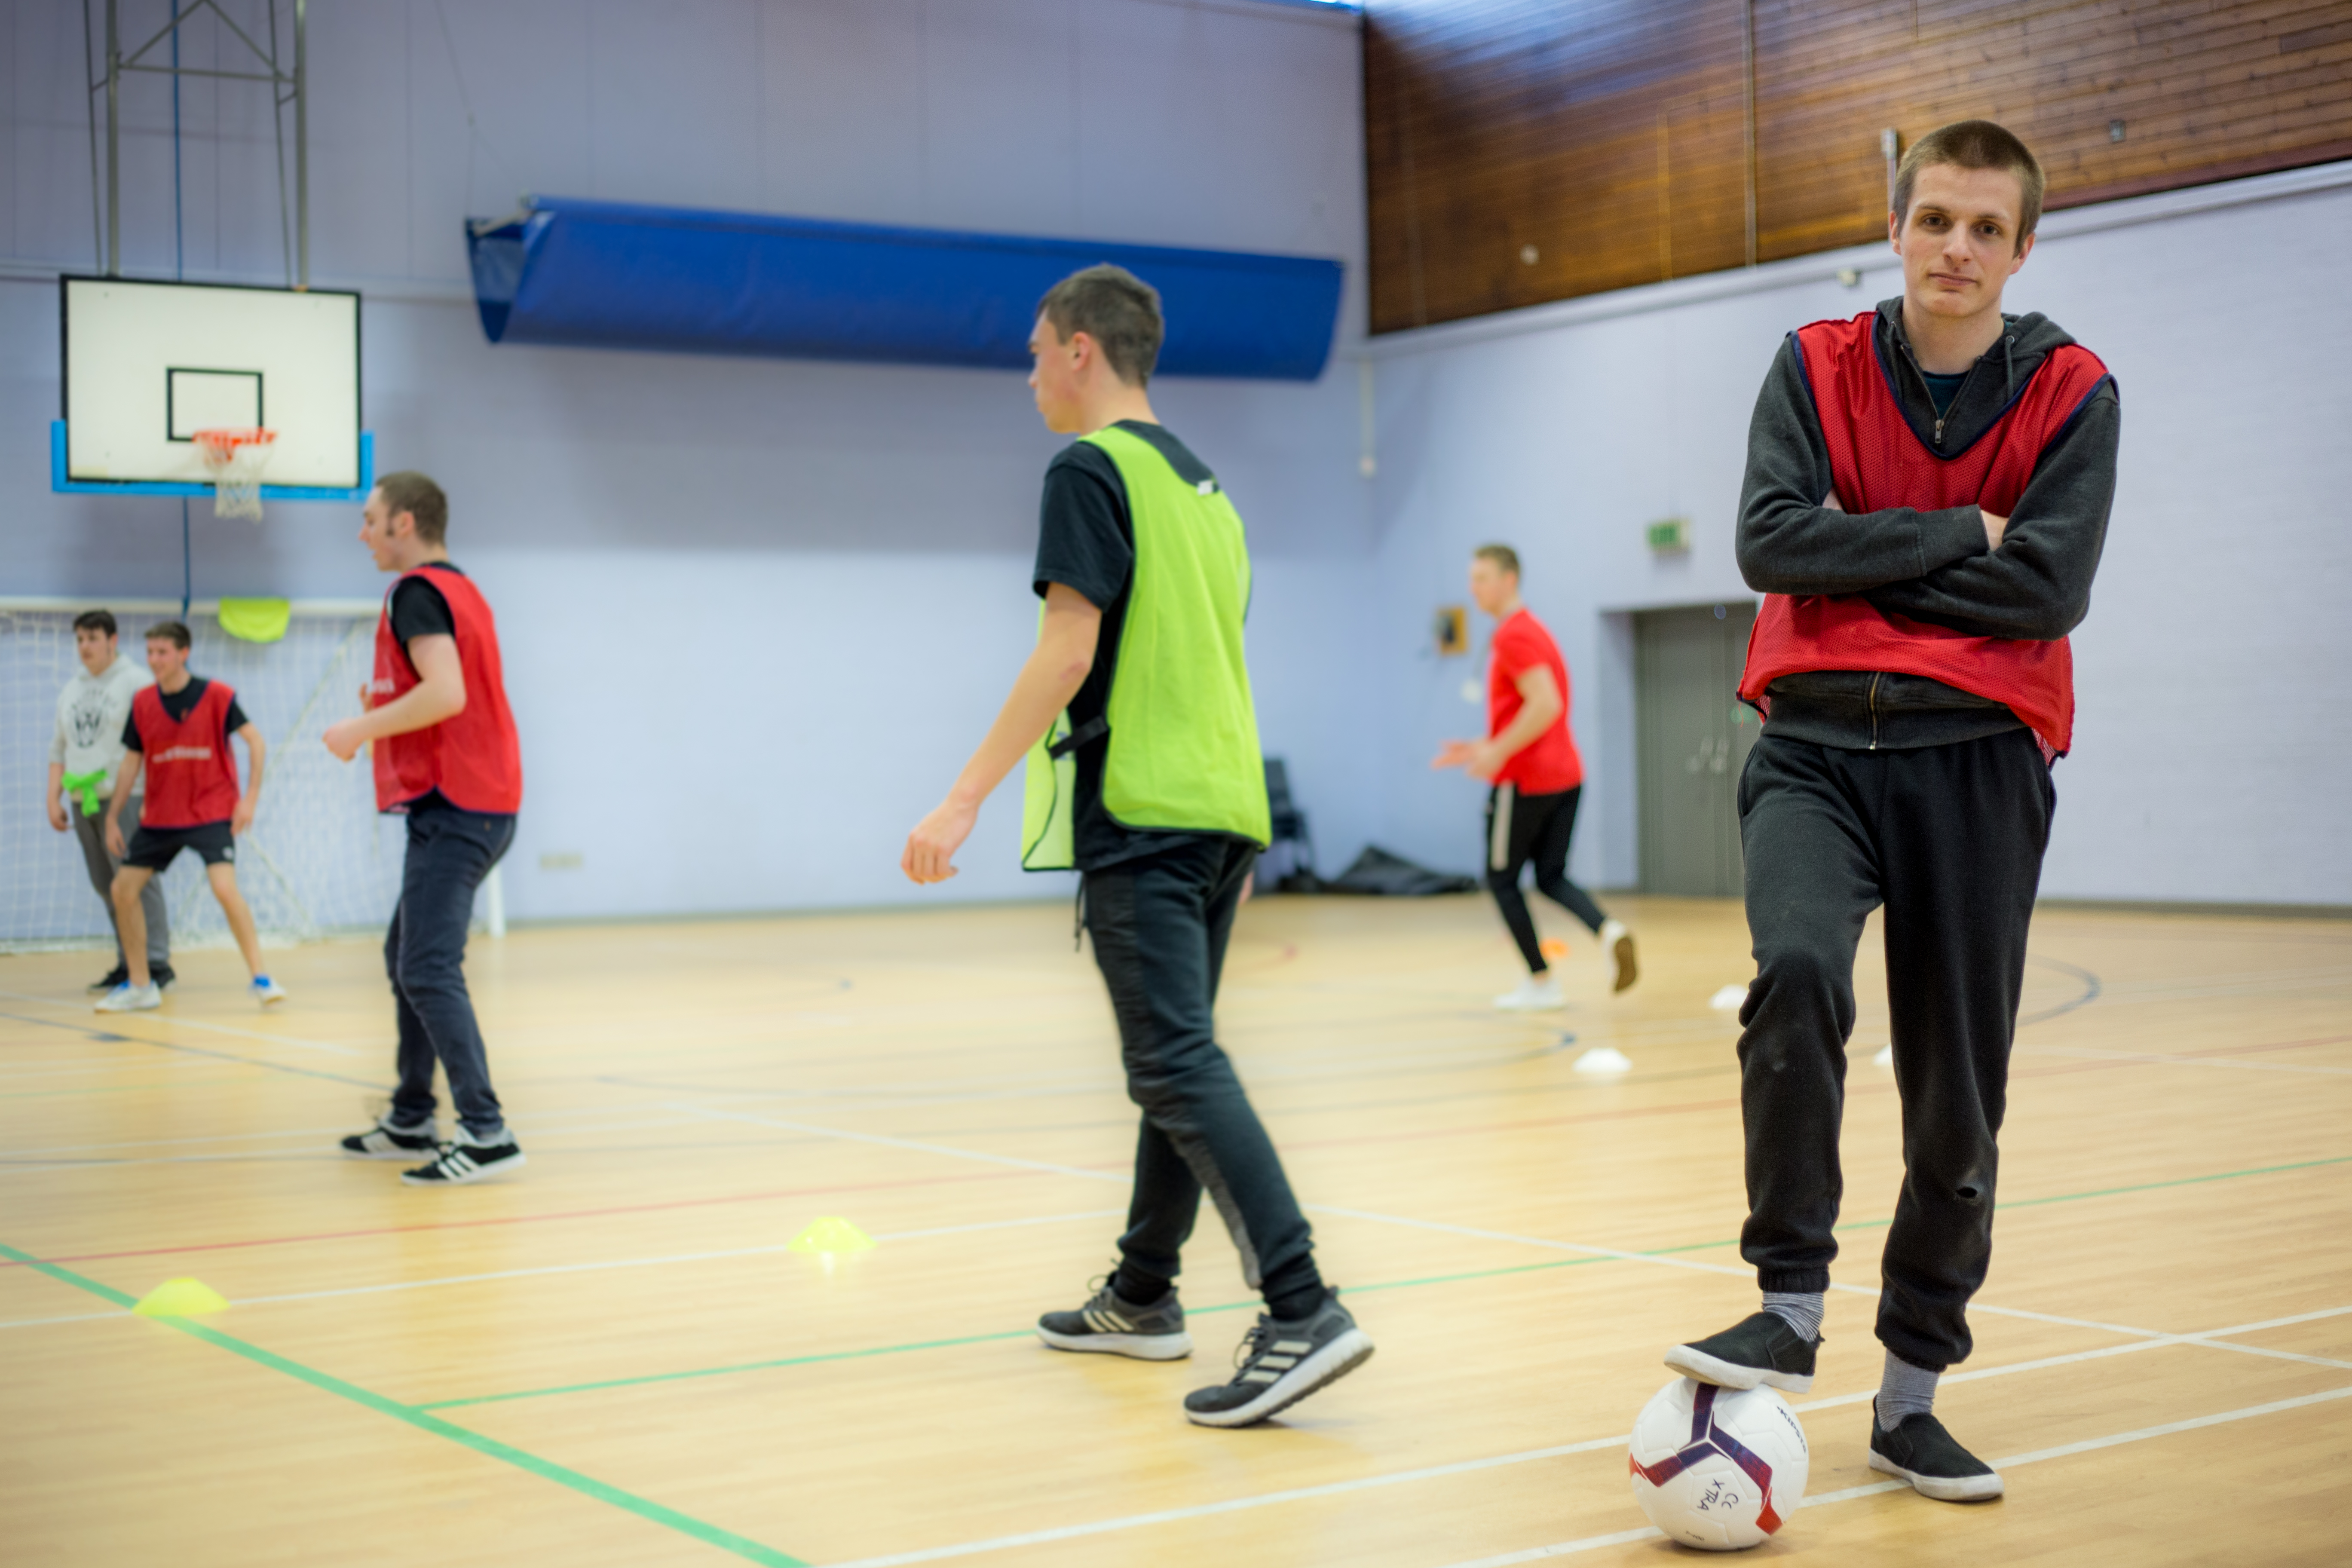 Football in the sports hall